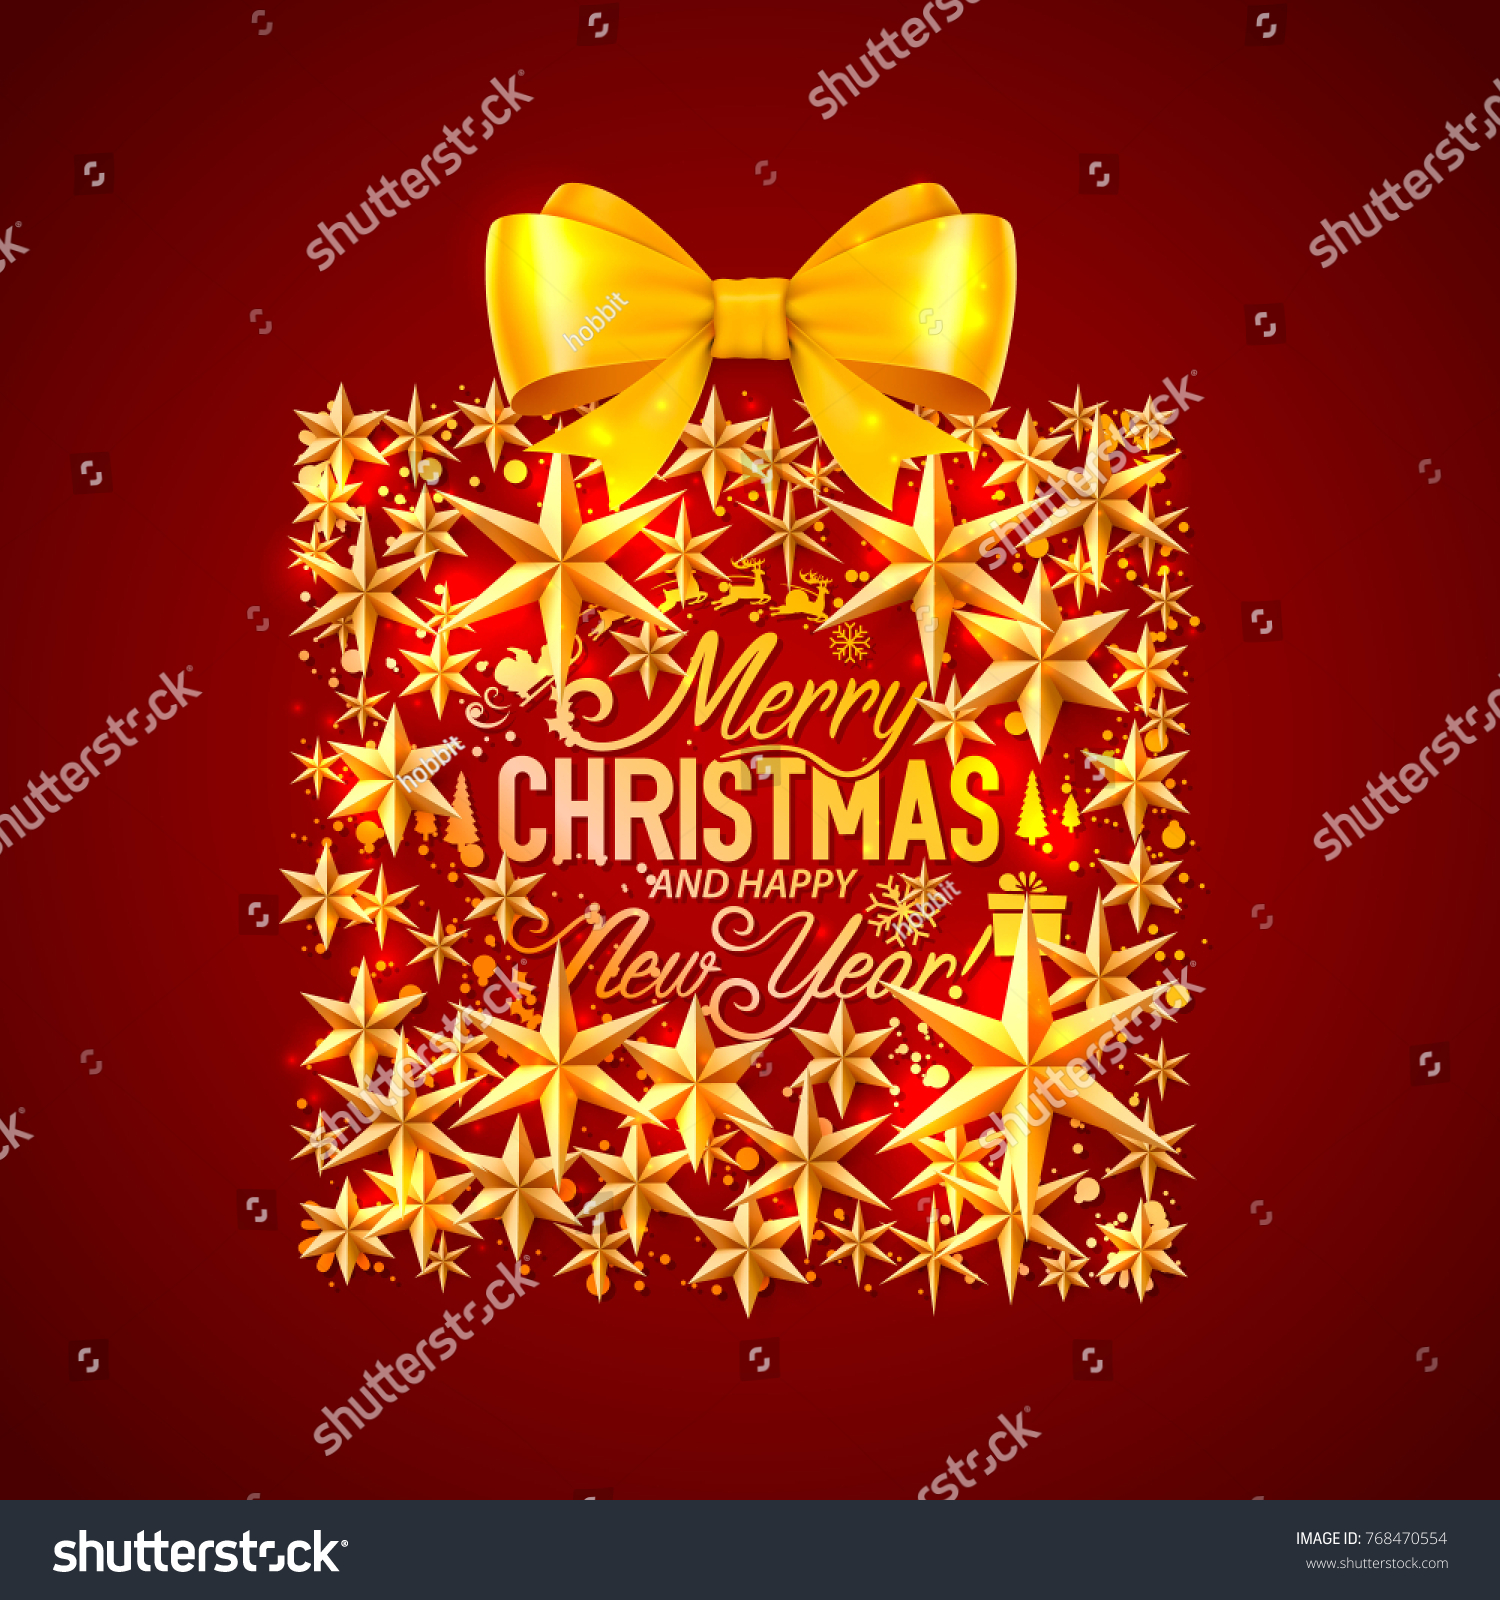 merry christmas and happy new year gift with bow vector background design